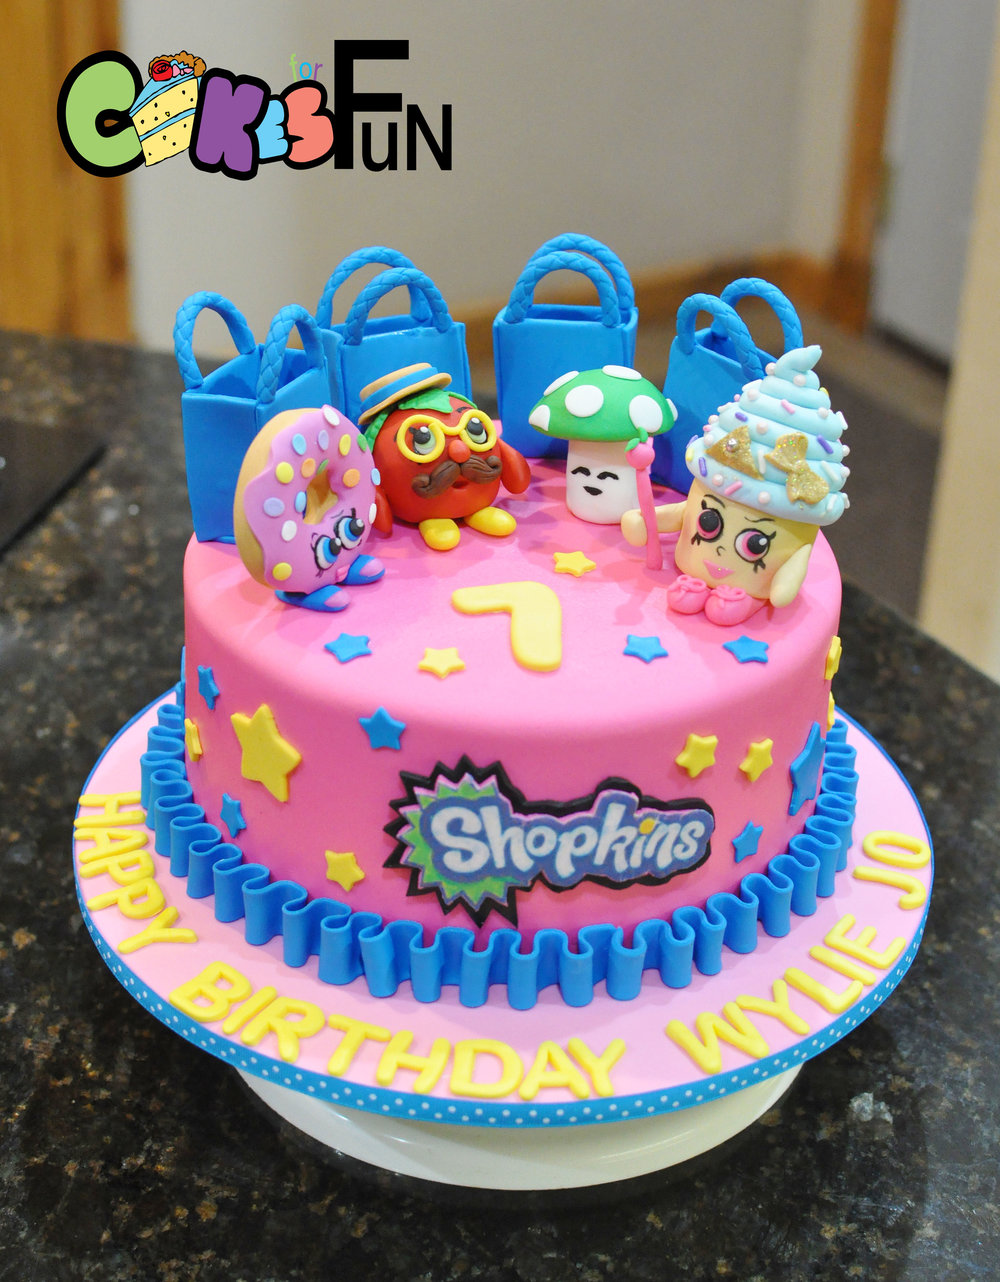 Shopkins - 1 tier.jpg